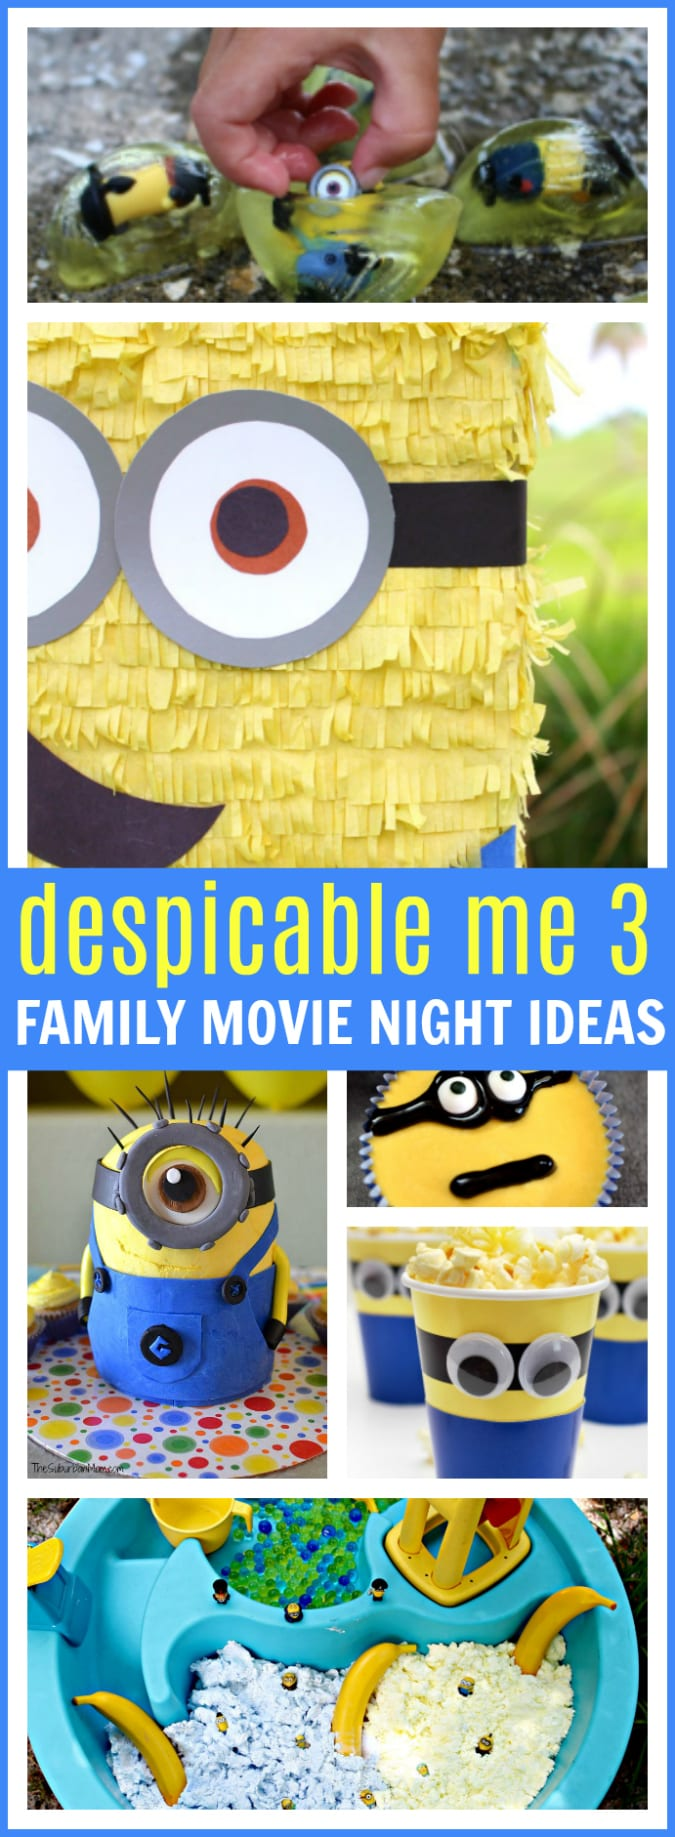 Despicable me 3 family movie night ideas